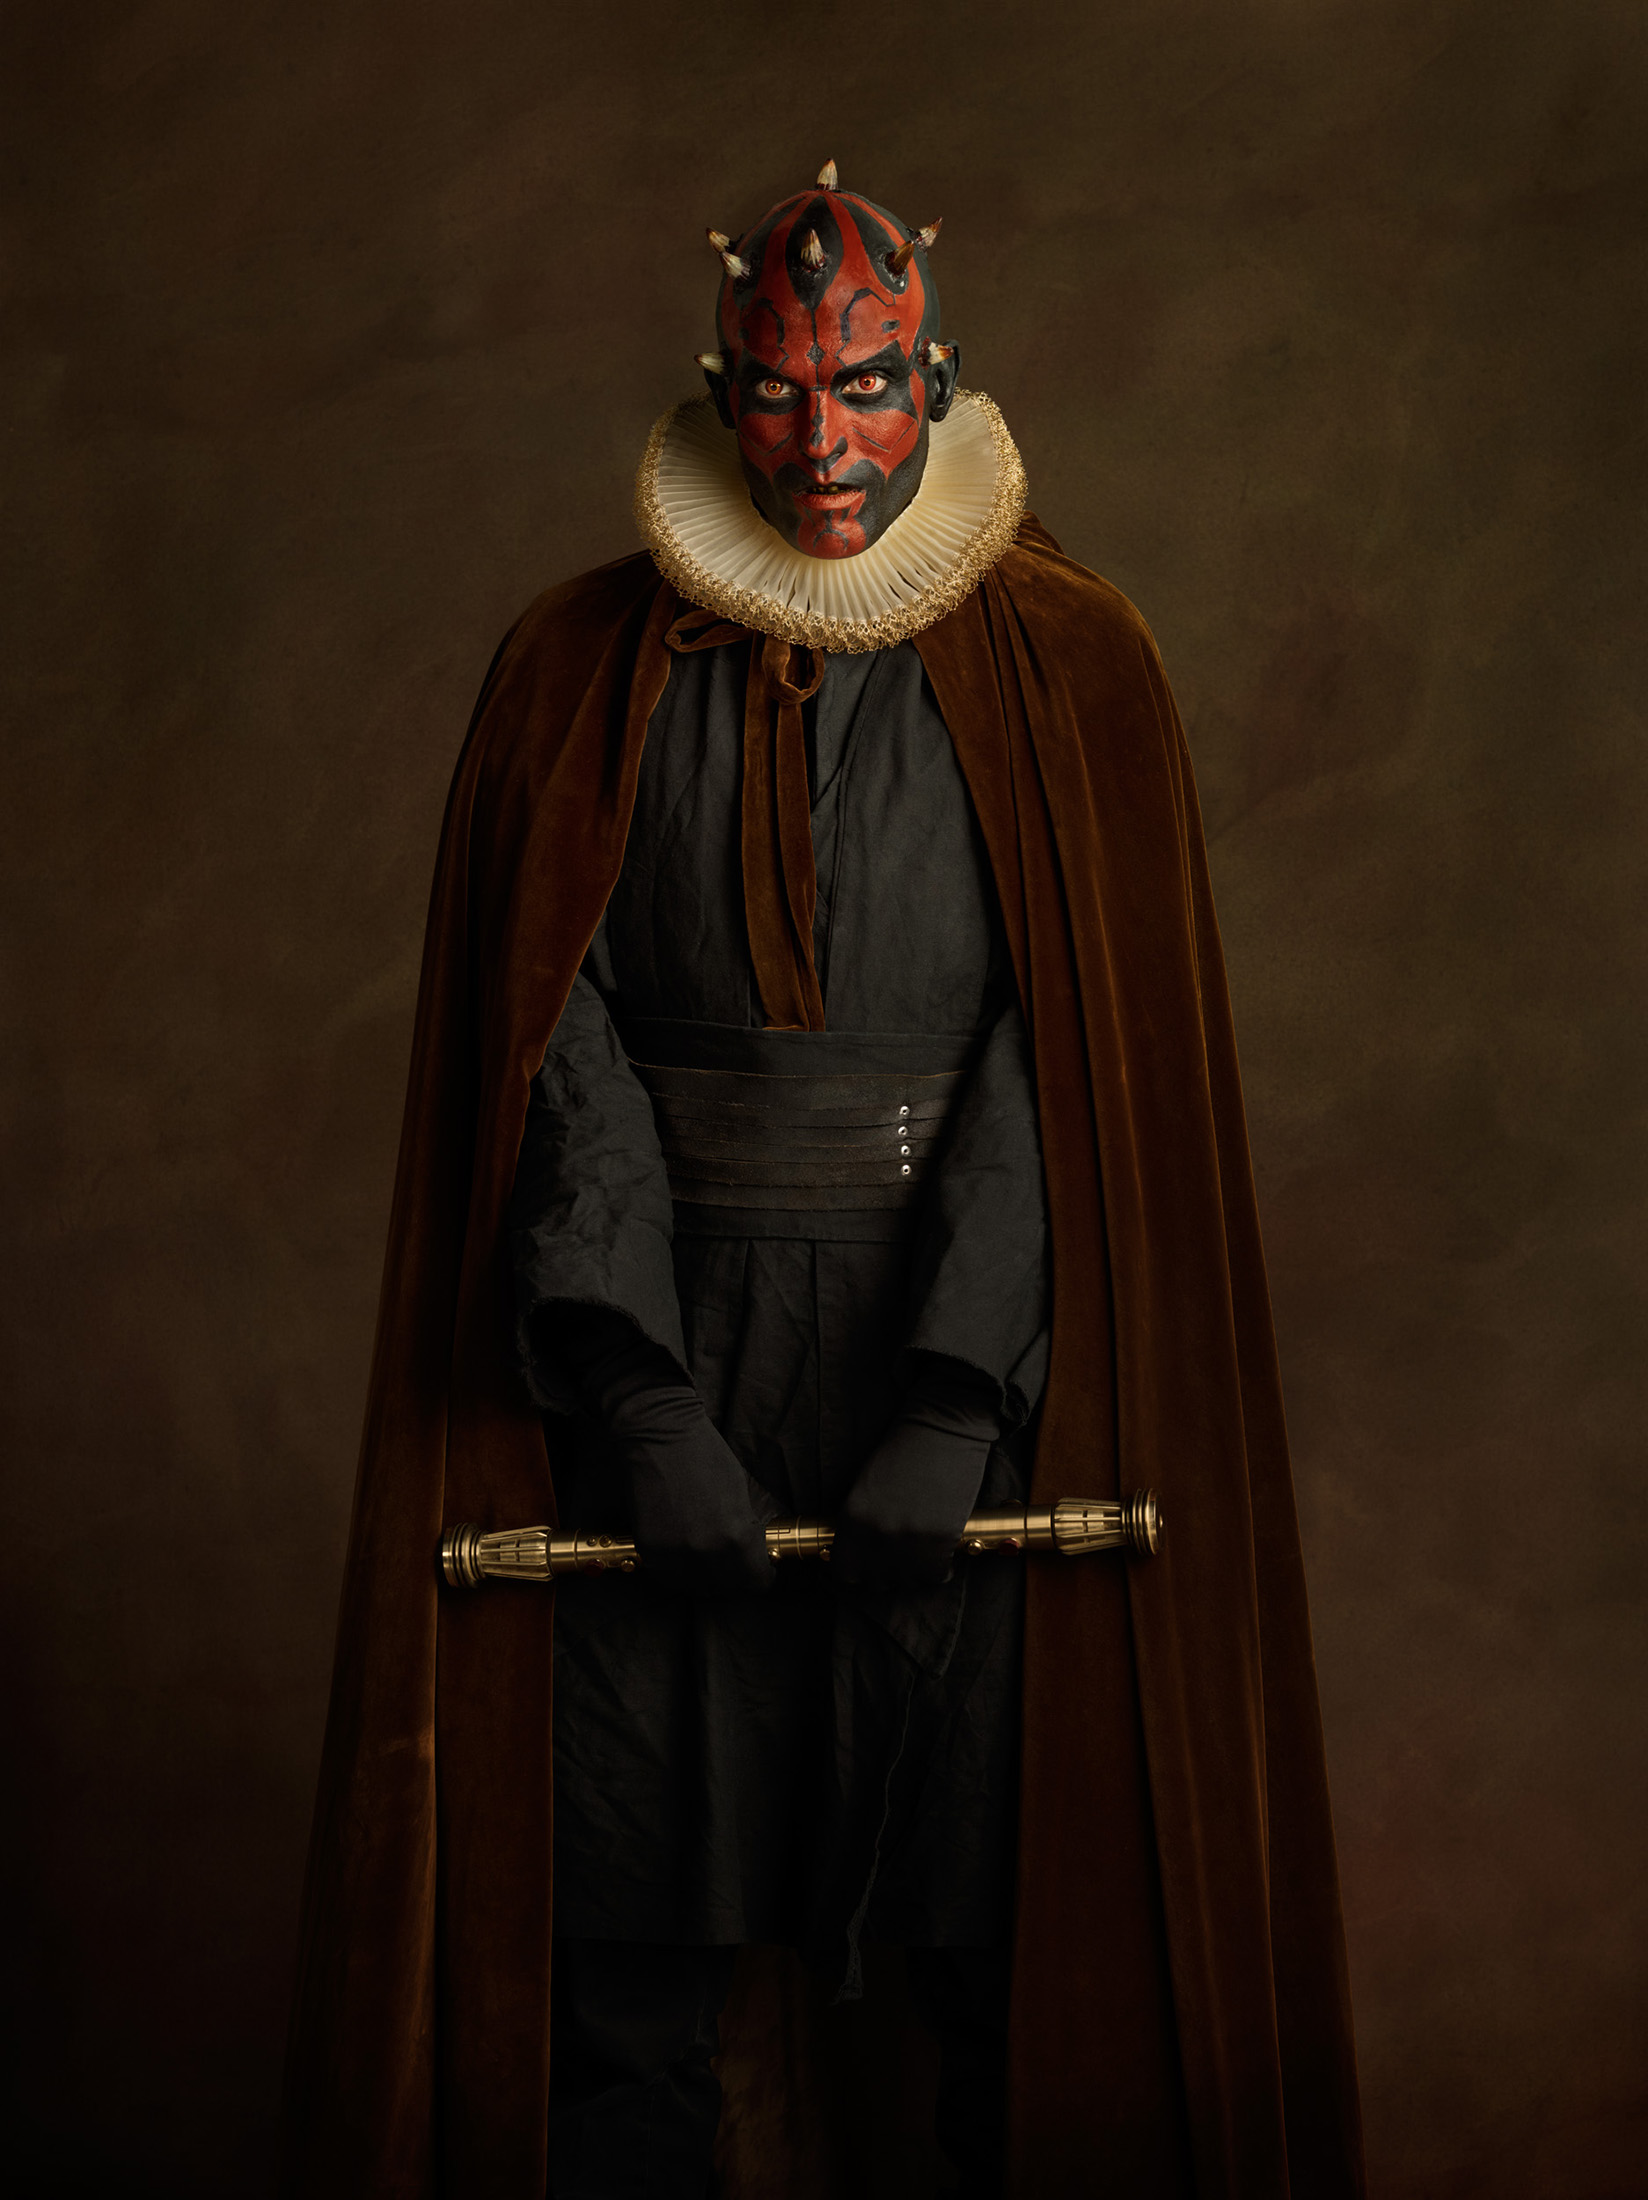 15_07_13_Super Heros Flamands _24_darth_maul_1333_05